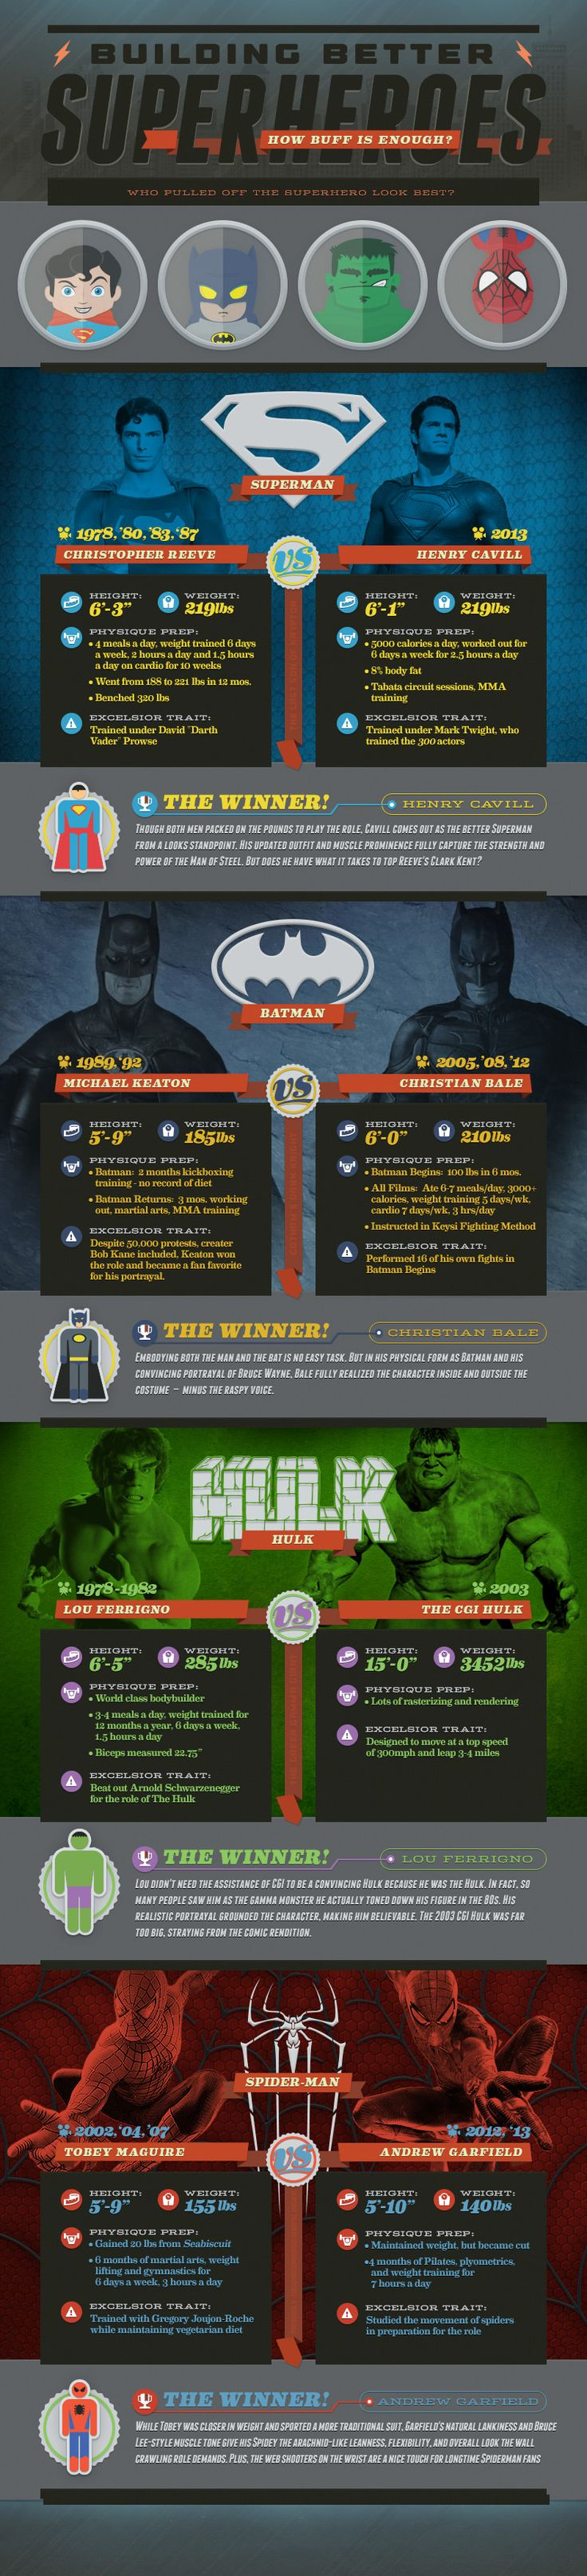 Who pulled off the superhero look best?: Nerd Stuff, Building Better, Superhero Infographic, Movie, Superheroes, Infographic Entertainment, Super Heroes, Superhero Actor, Better Superhero